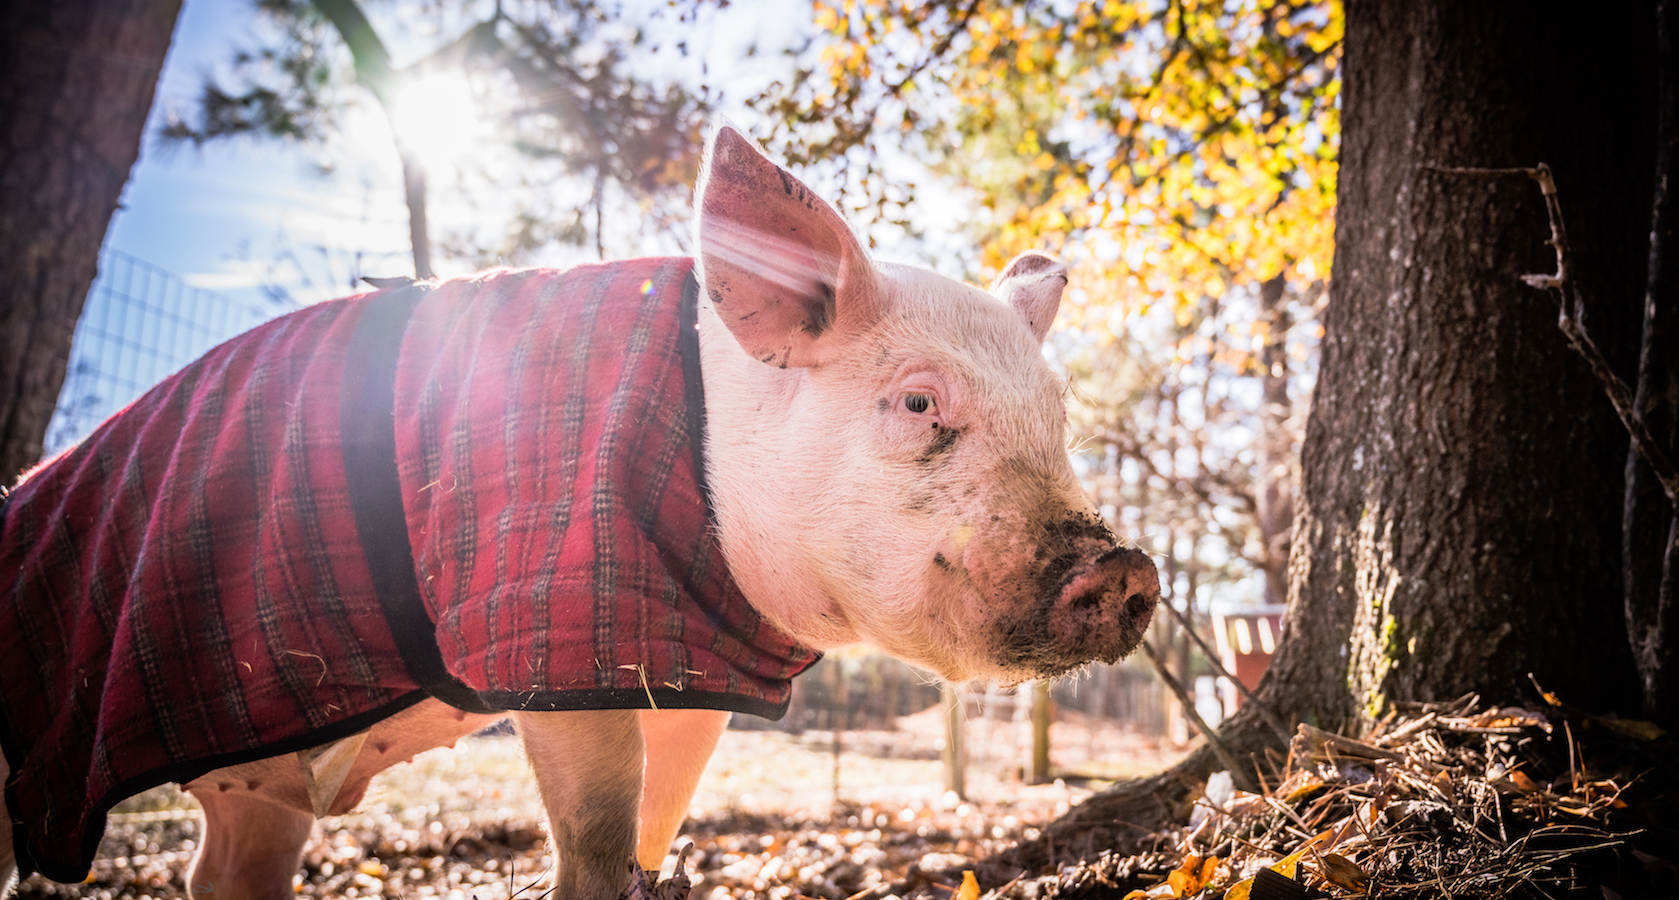 Pig in Plaid